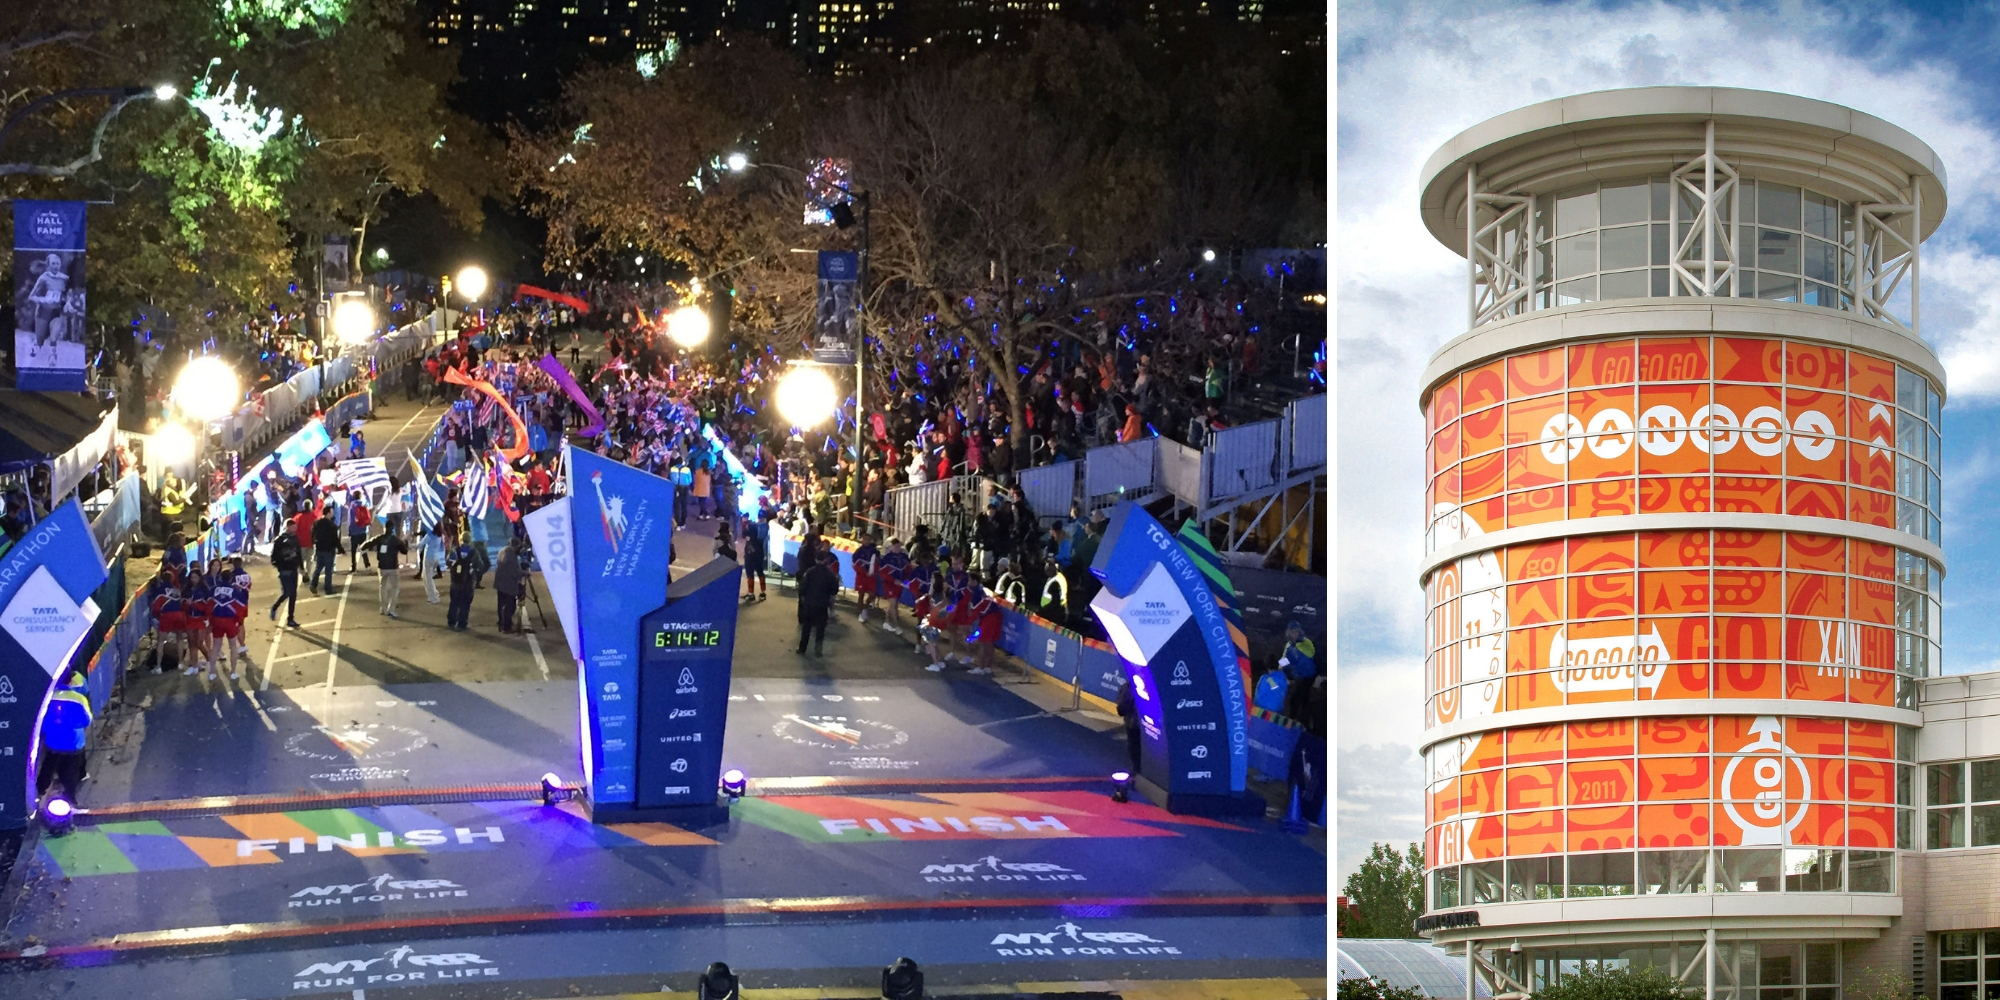 2-events-graphics-marathon-finish-line-and-tower-windows